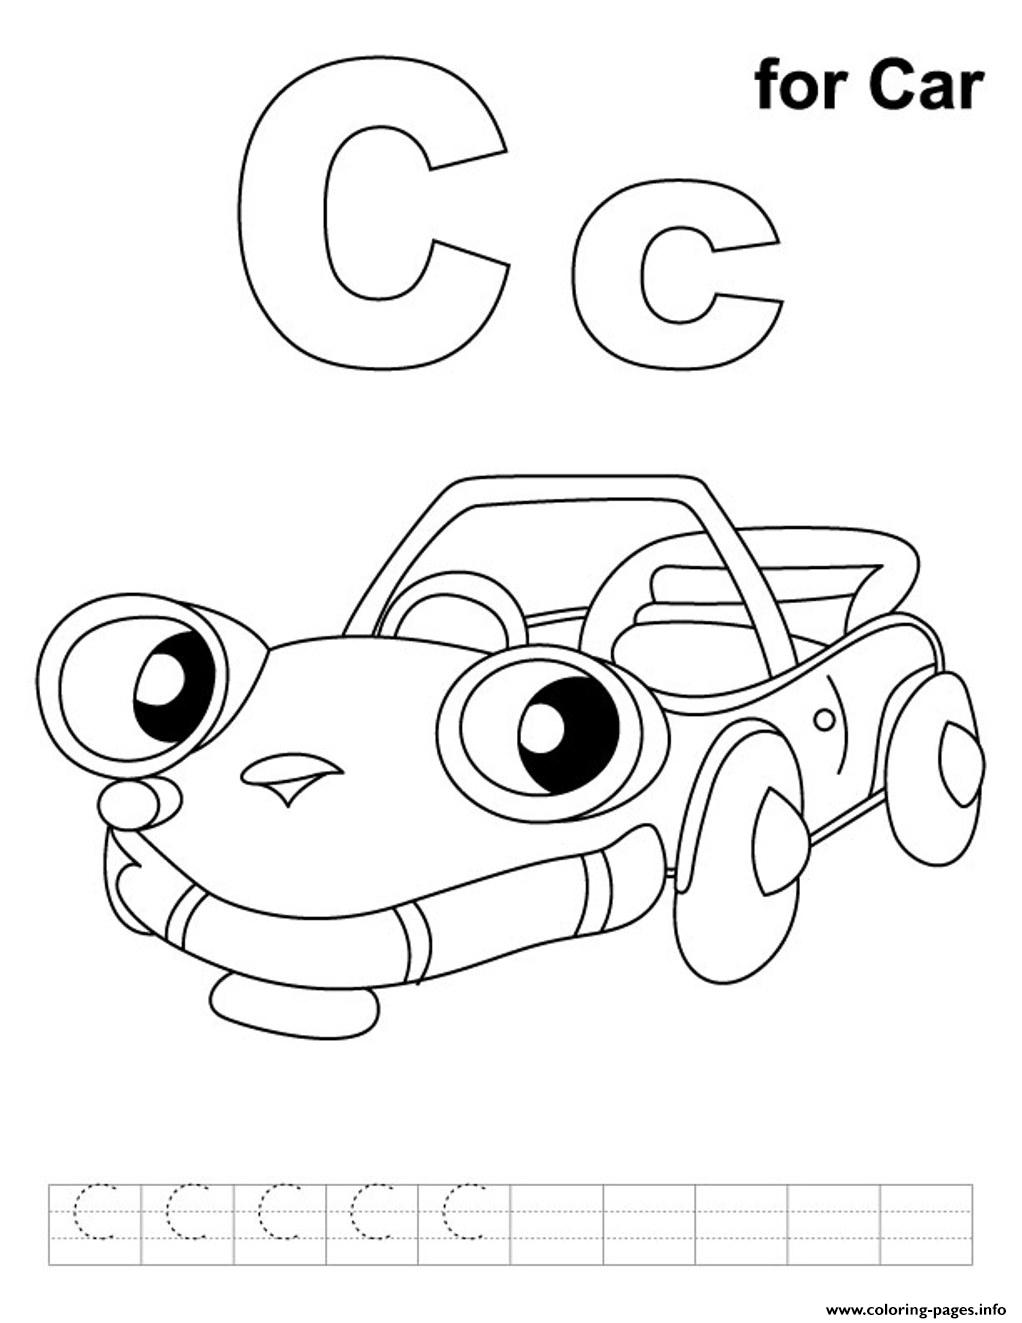 Car S Alphabet C28bc Coloring Pages